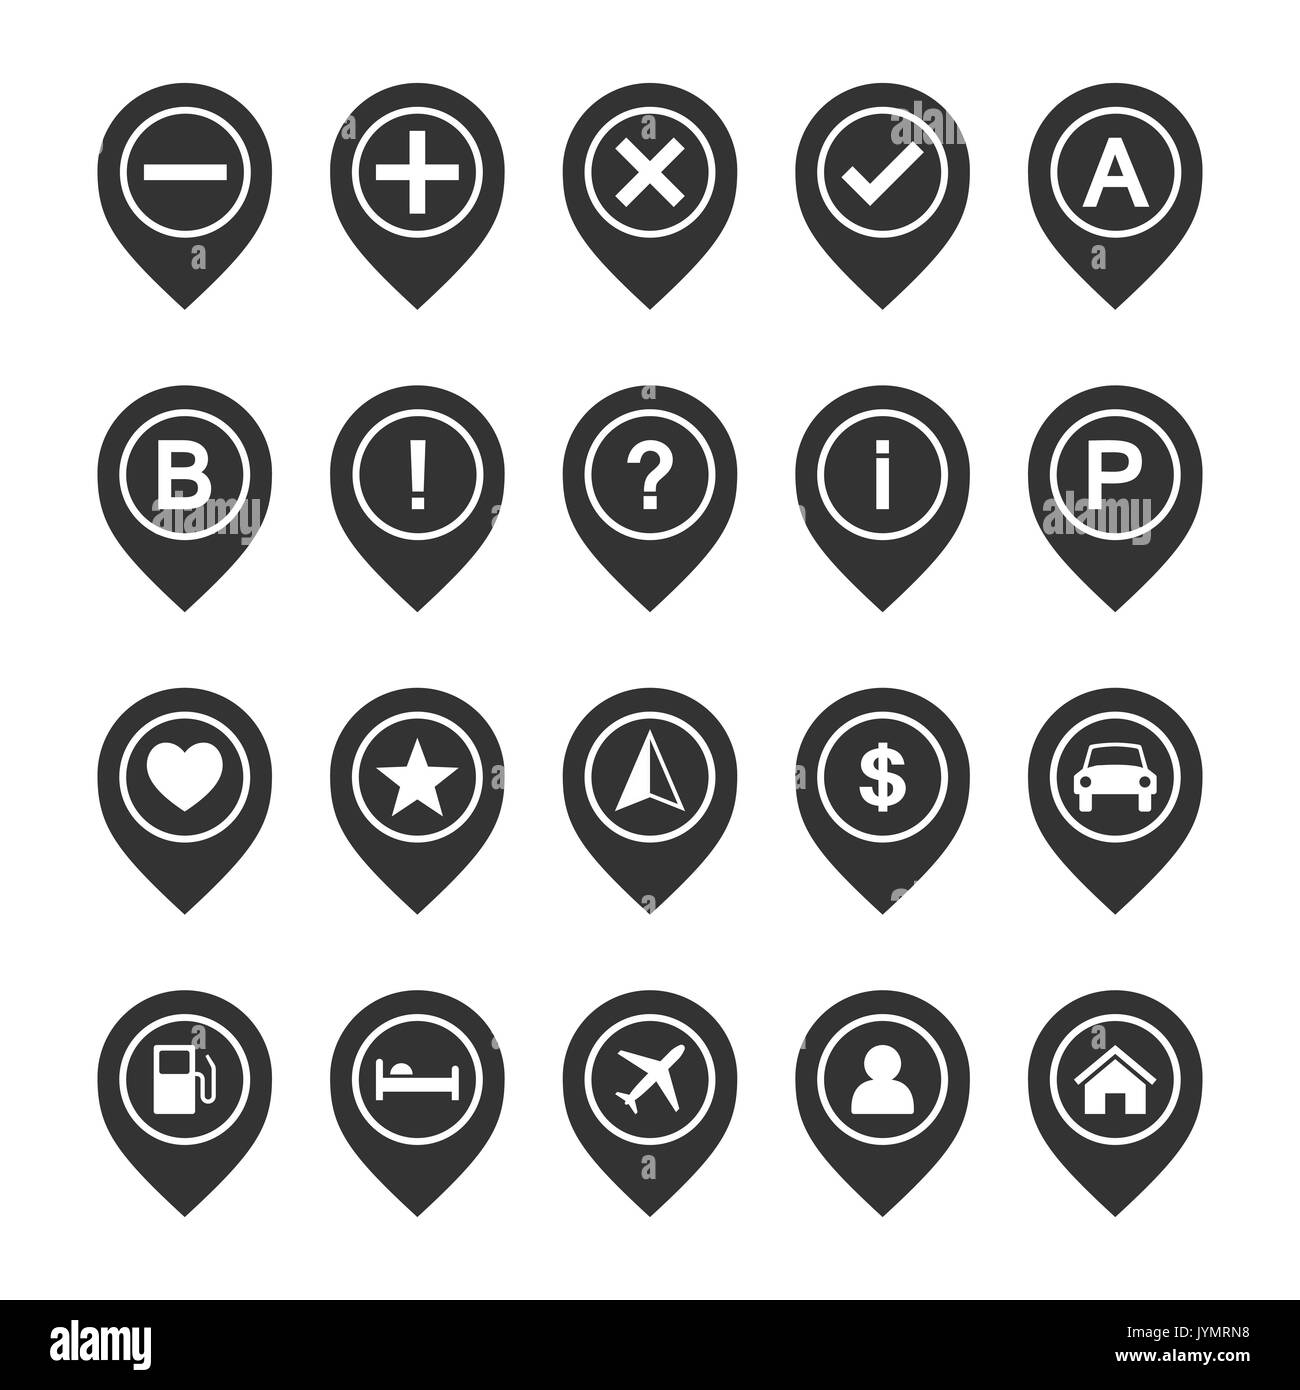 vector icon set of map pins or pointers place location markers or